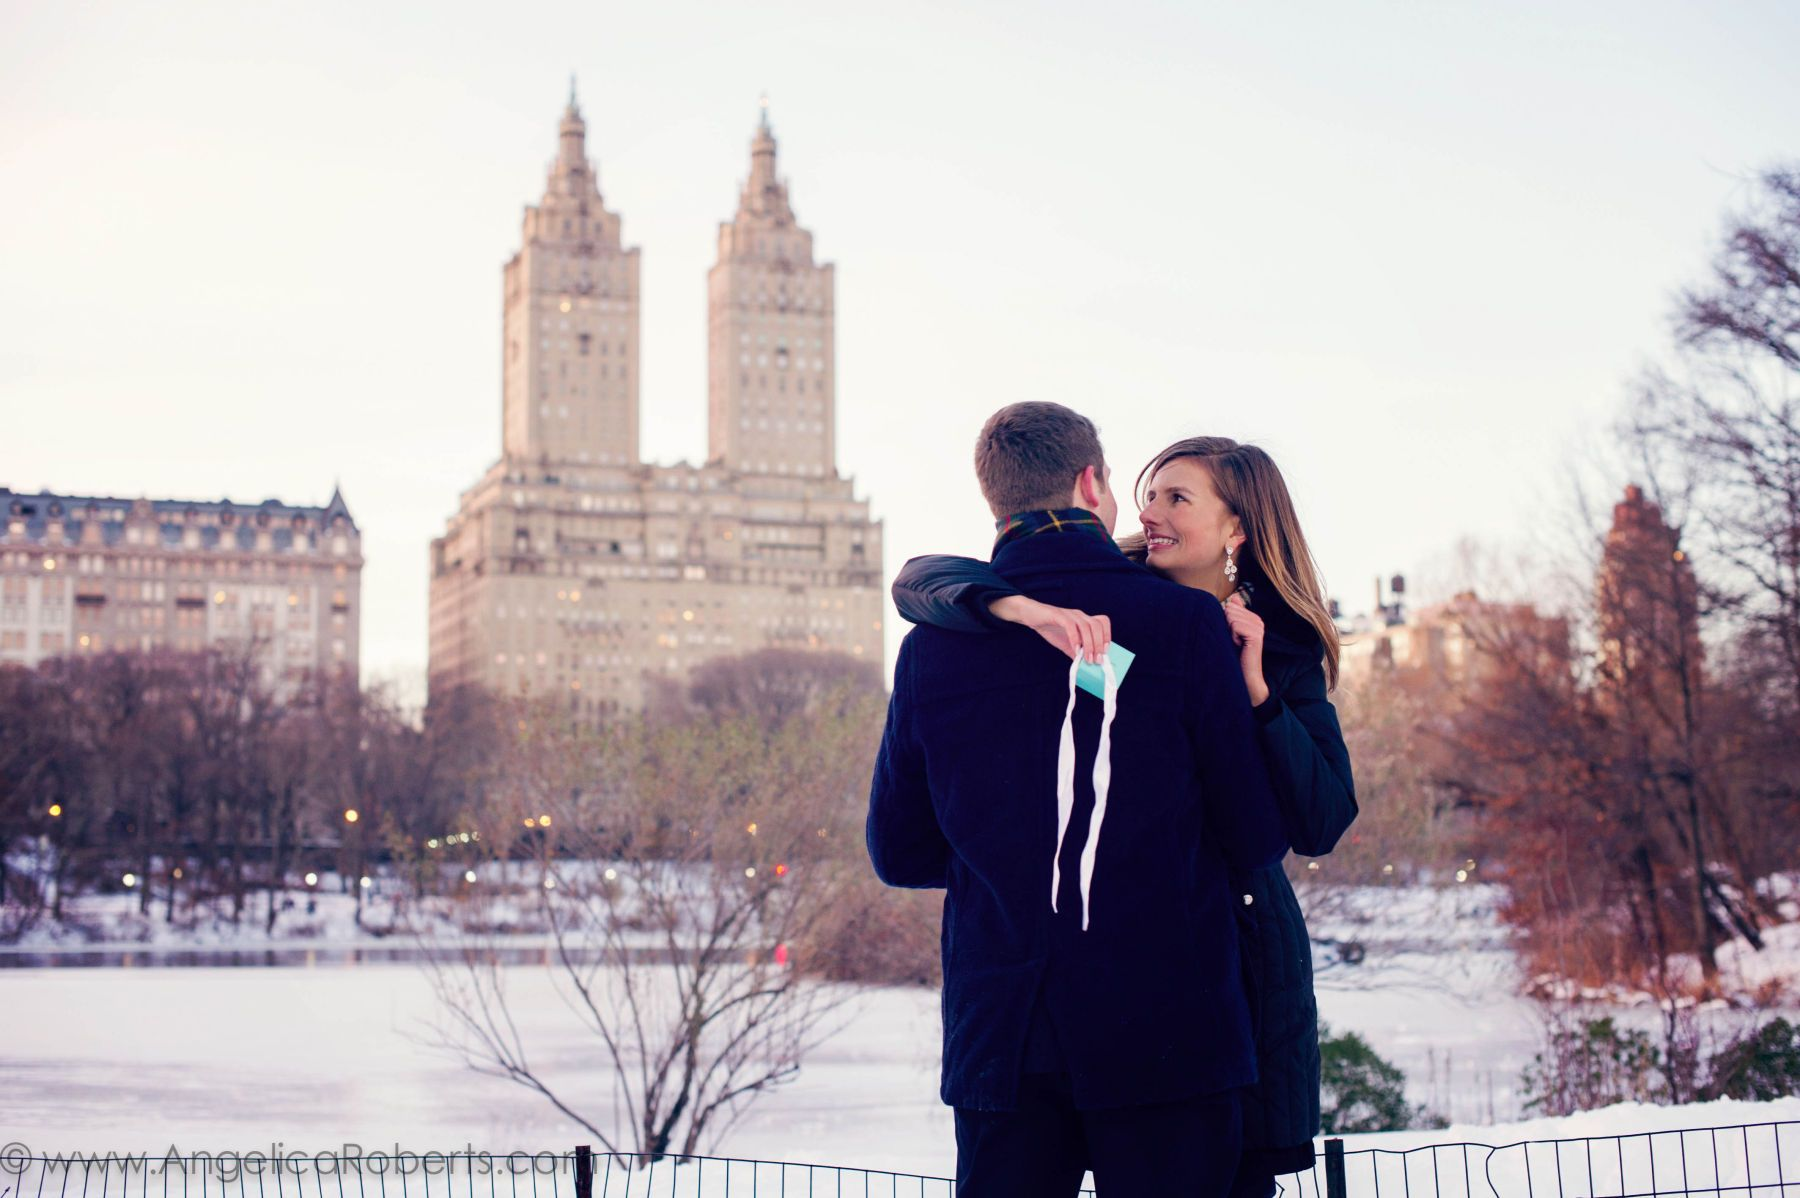 New York City Engagement photography by Angelica Roberts Photography- Central Park Engagement